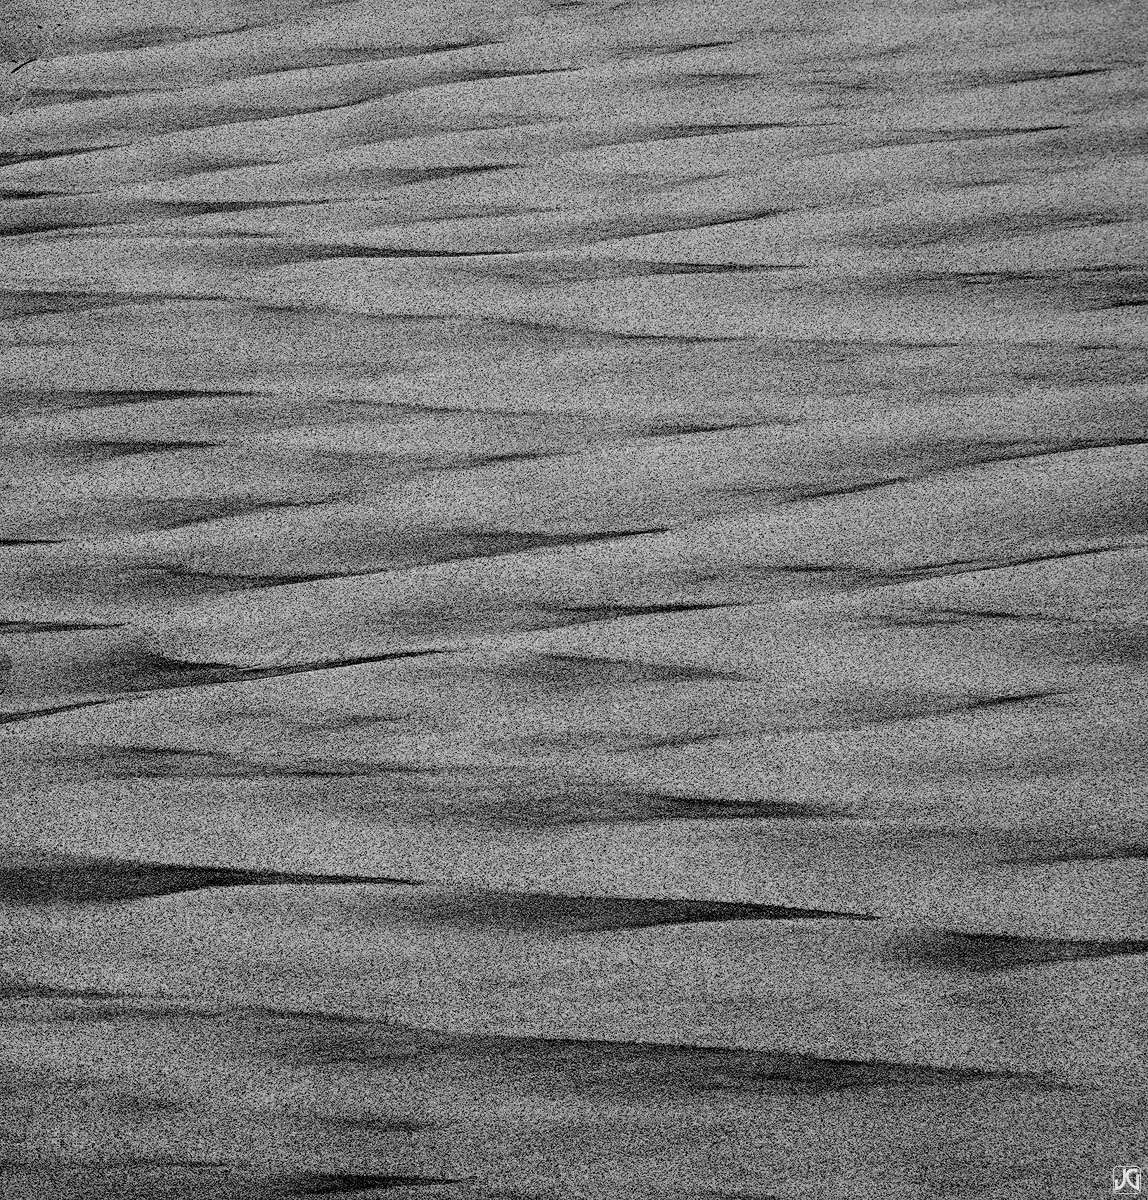 Looking north or south, one gets a different viewpoint of these sand patterns.